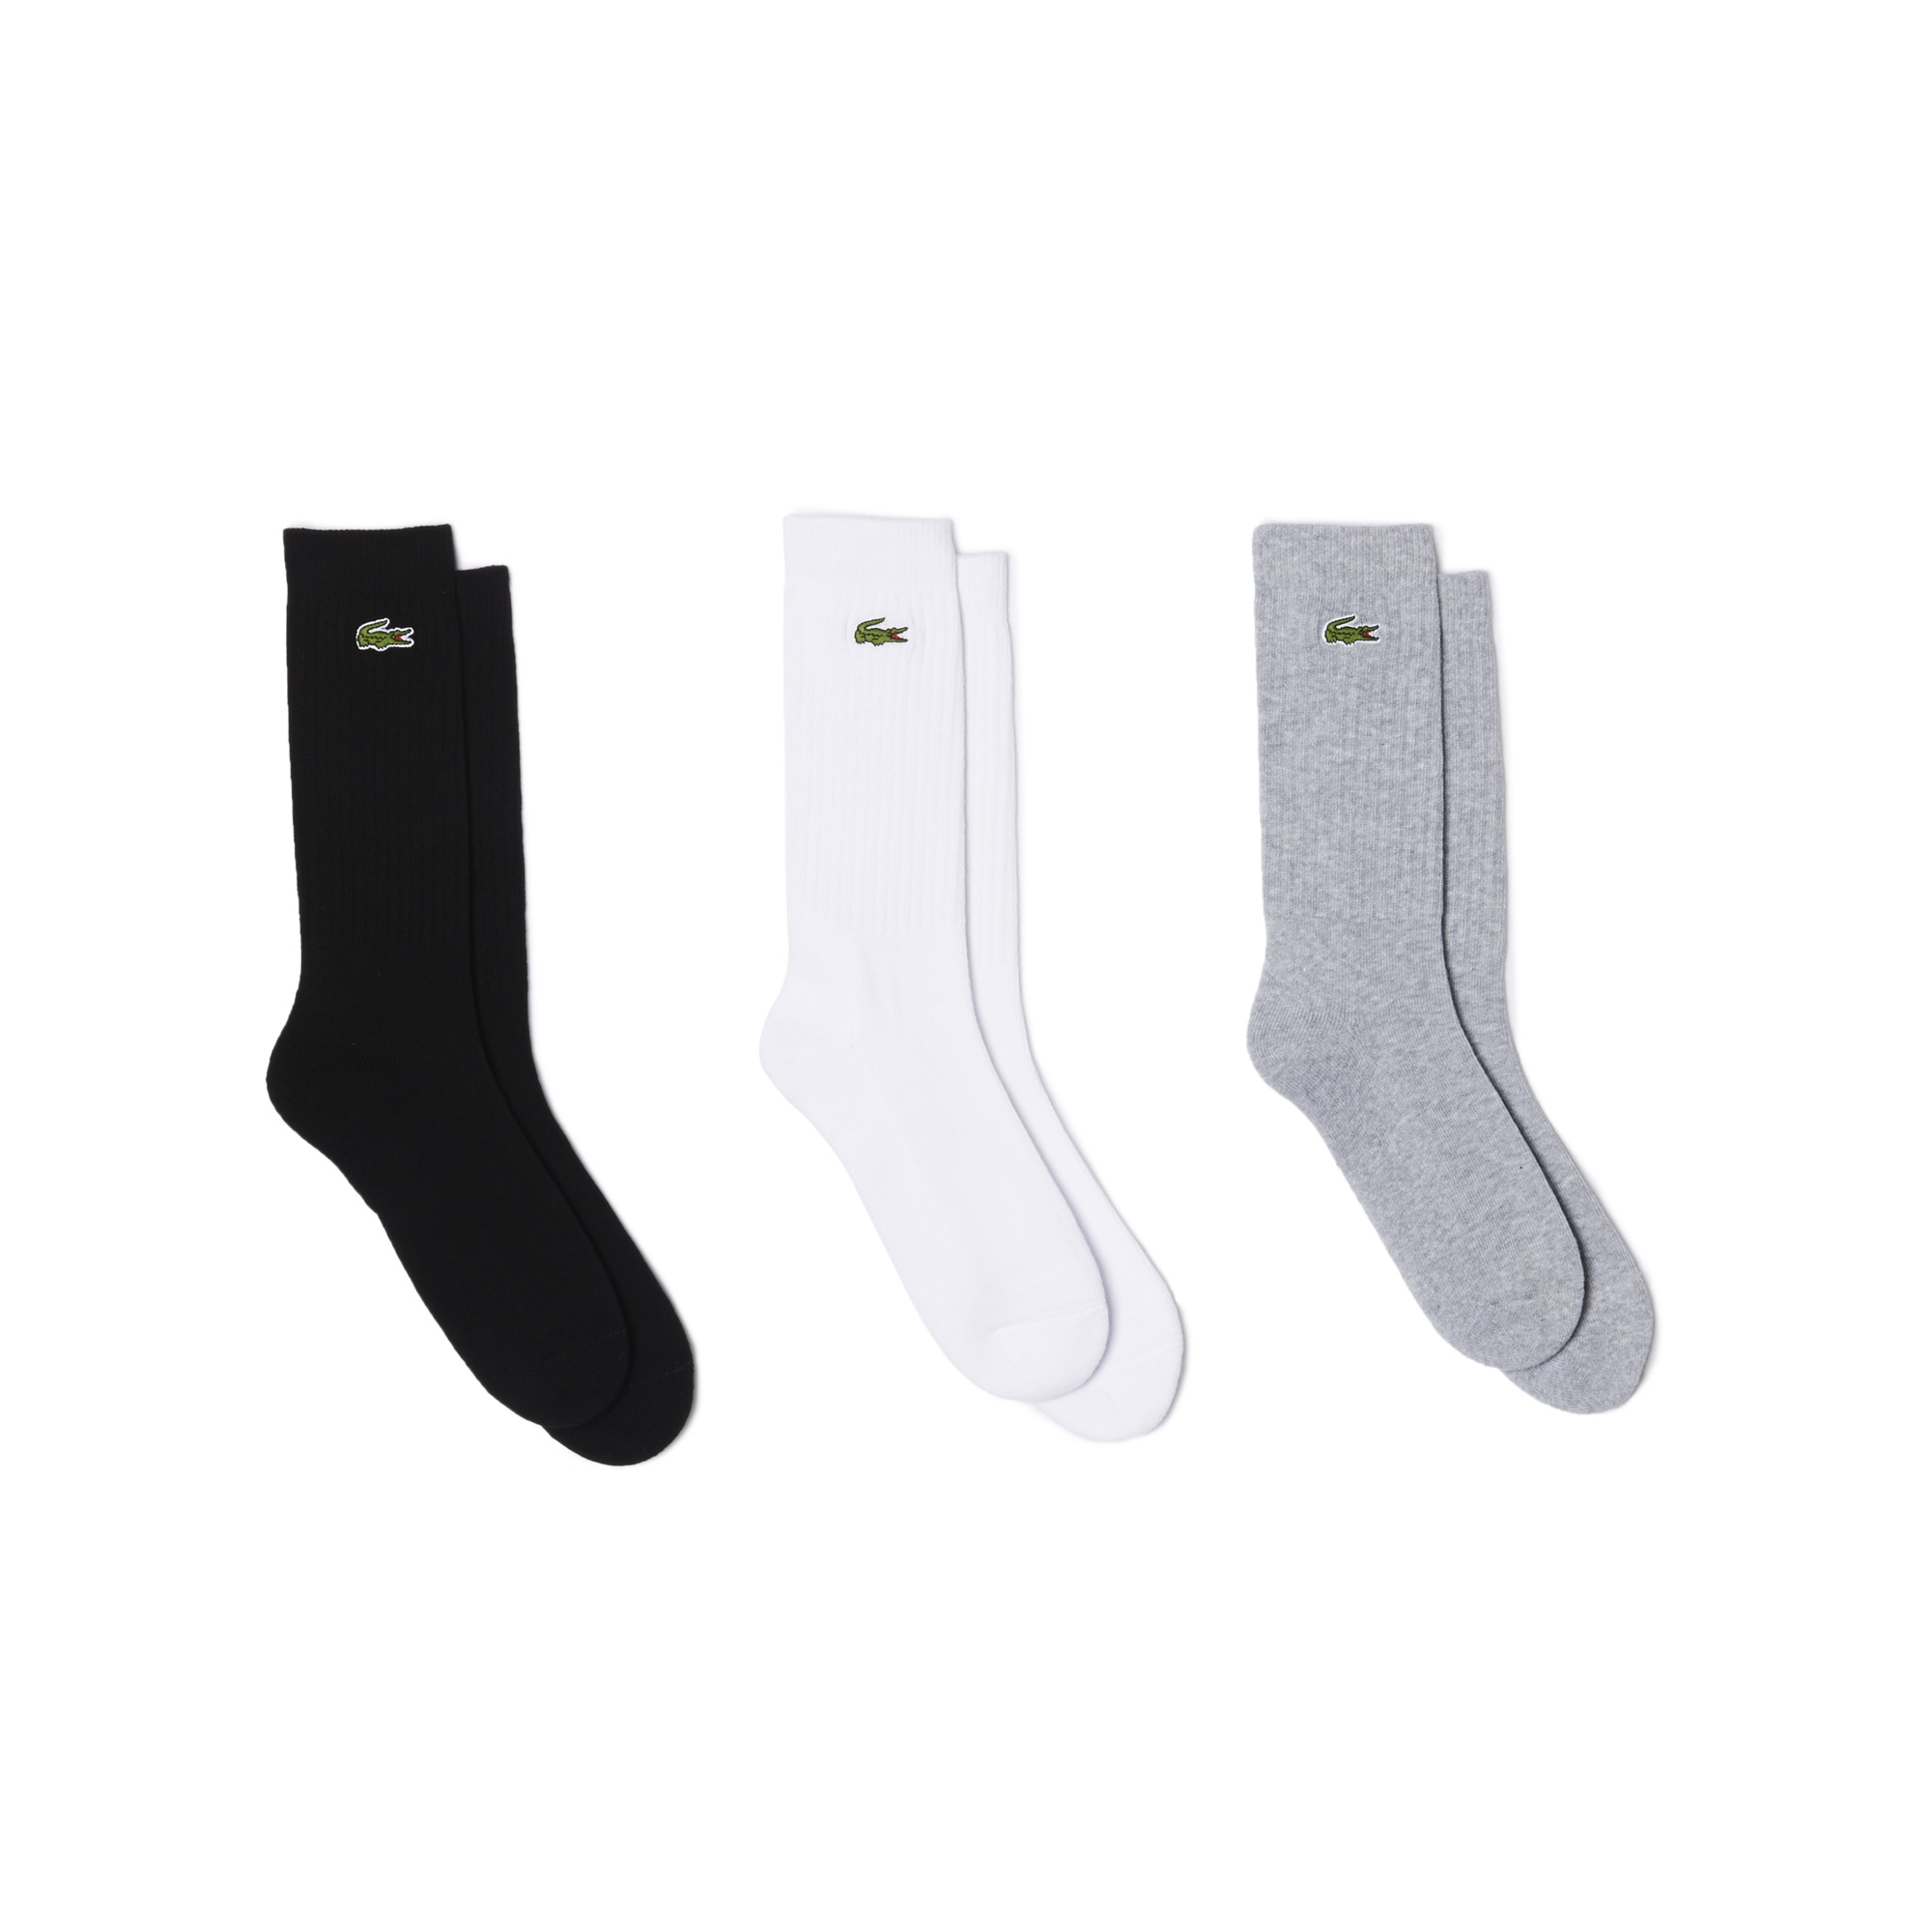 Men's Unisex Lacoste SPORT Tennis 3 Pack Of Socks